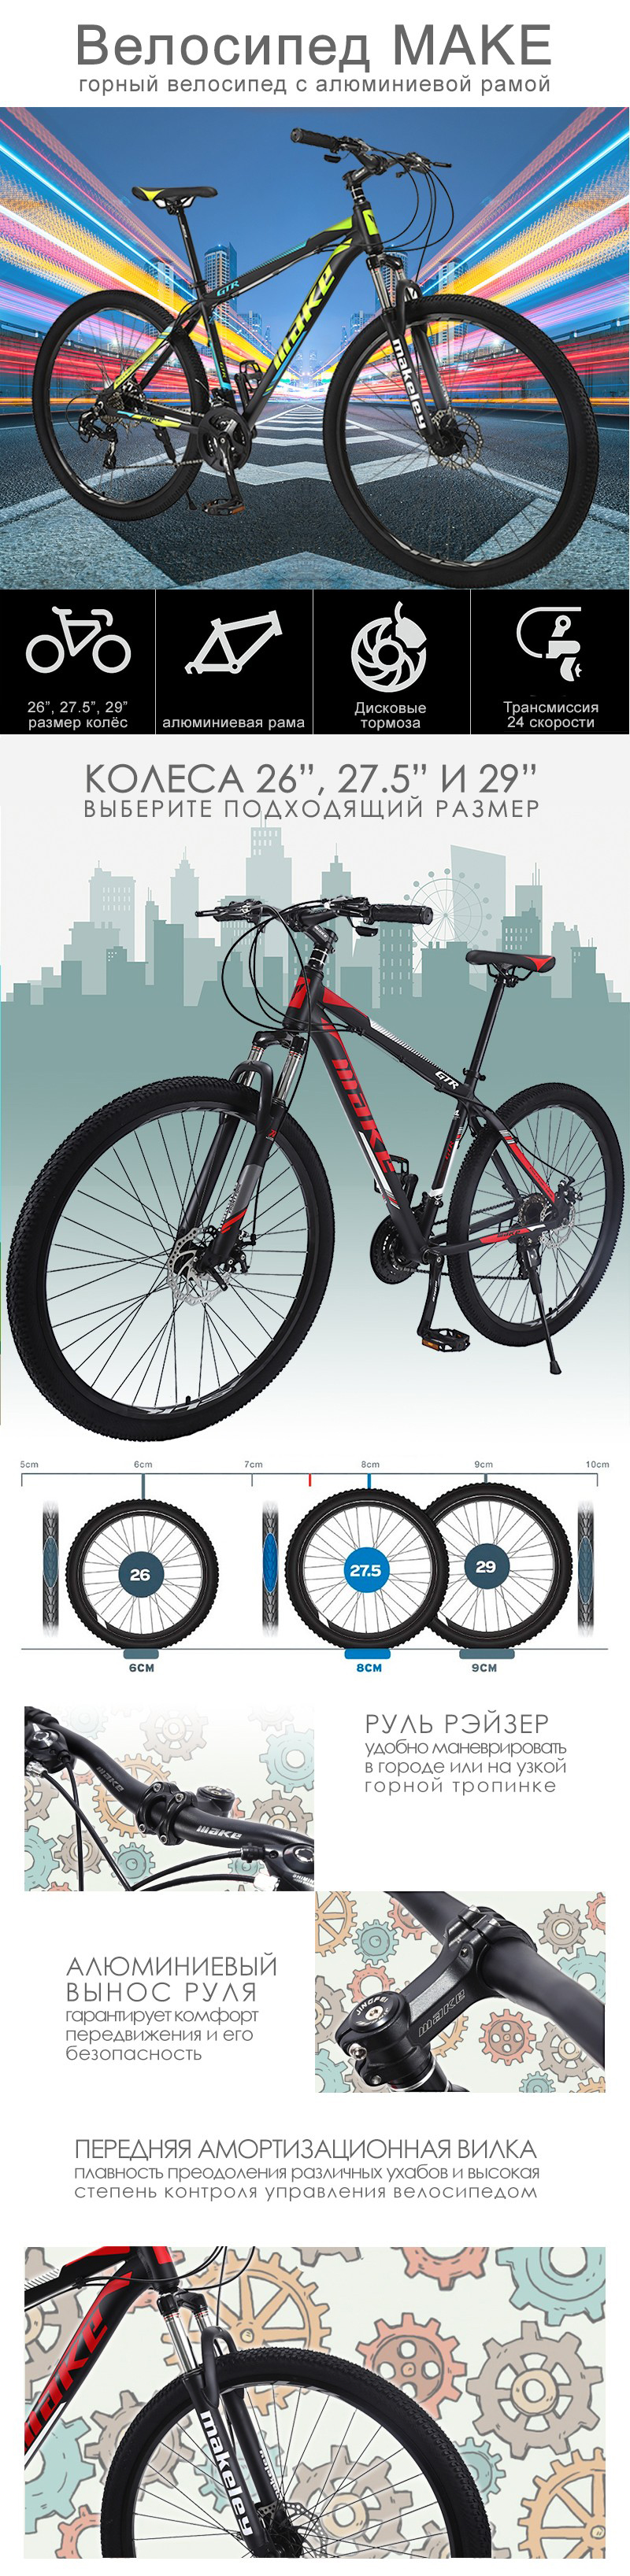 "HTB1 PggdEGF3KVjSZFmq6zqPXXa8 Mountain Bike MAKE 26""/27.5""/29"" 24 Speed Disc Brakes Aluminium Frame"